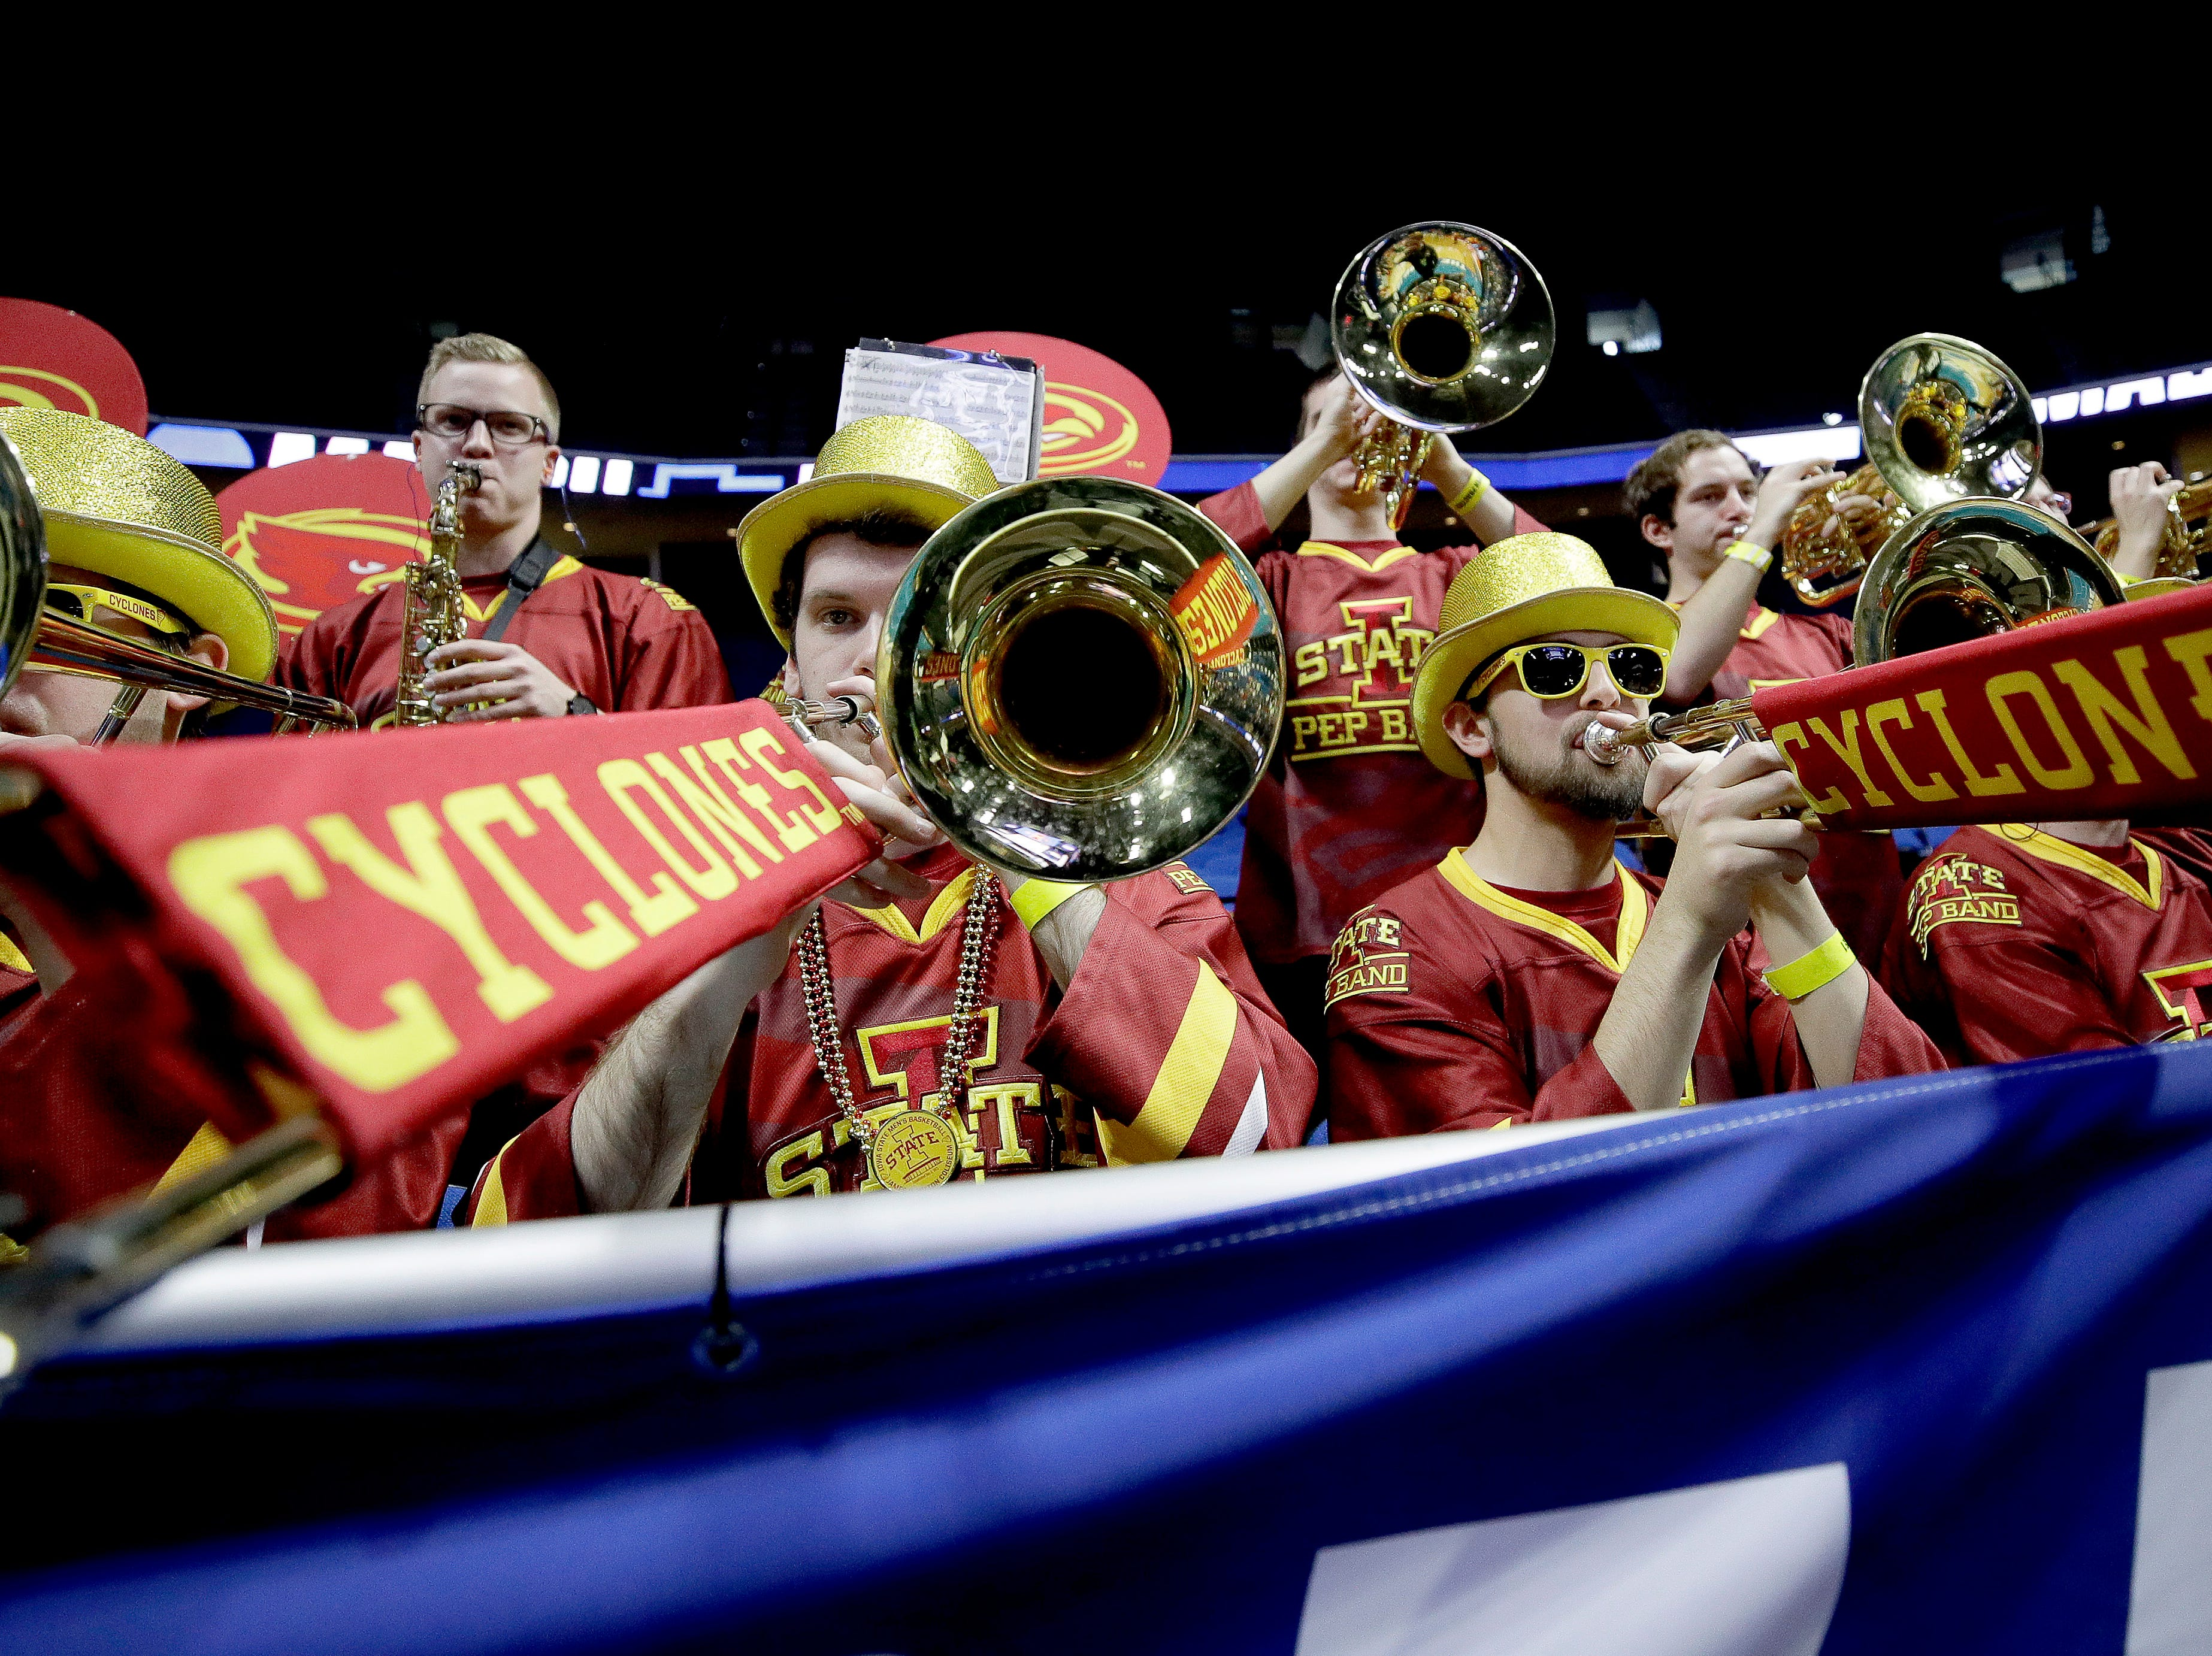 Iowa State's band plays during practice for the NCAA men's college basketball tournament Thursday, March 21, 2019, in Tulsa, Oklahoma.